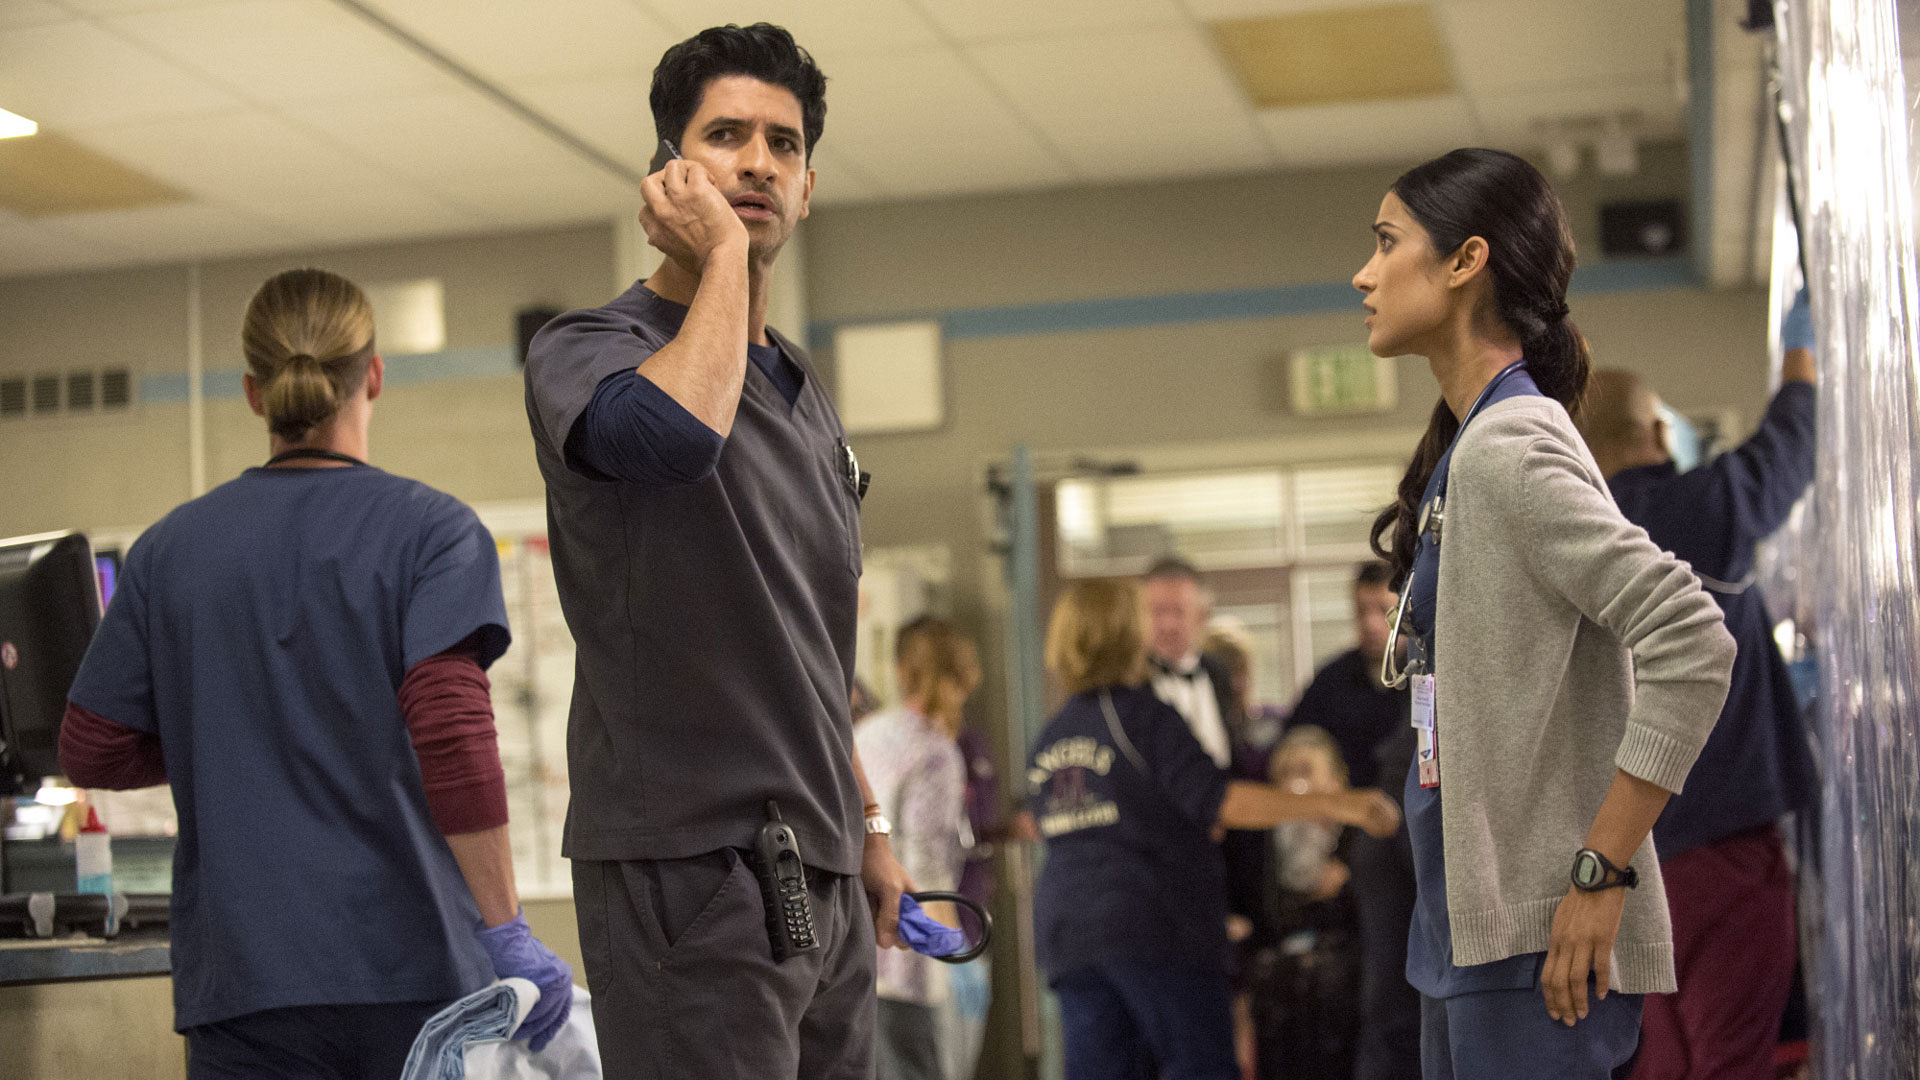 Raza Jaffrey as Dr. Neal Hudson and Melanie Chandra as Dr. Malaya Pineda